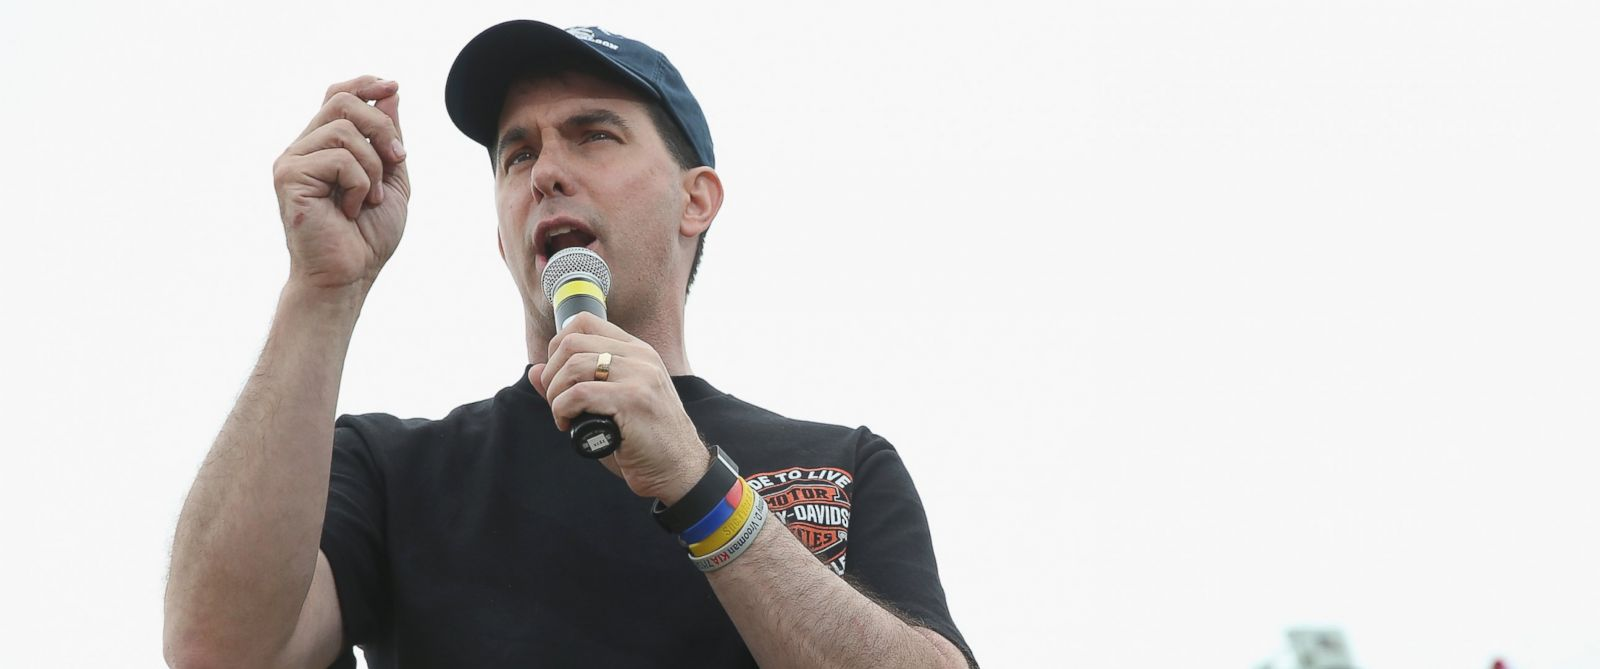 PHOTO: Republican presidential hopeful Wisconsin Governor Scott Walker speaks at a Roast and Ride event hosted by freshman Senator Joni Ernst, R-IA, on June 6, 2015 in Boone, Iowa.